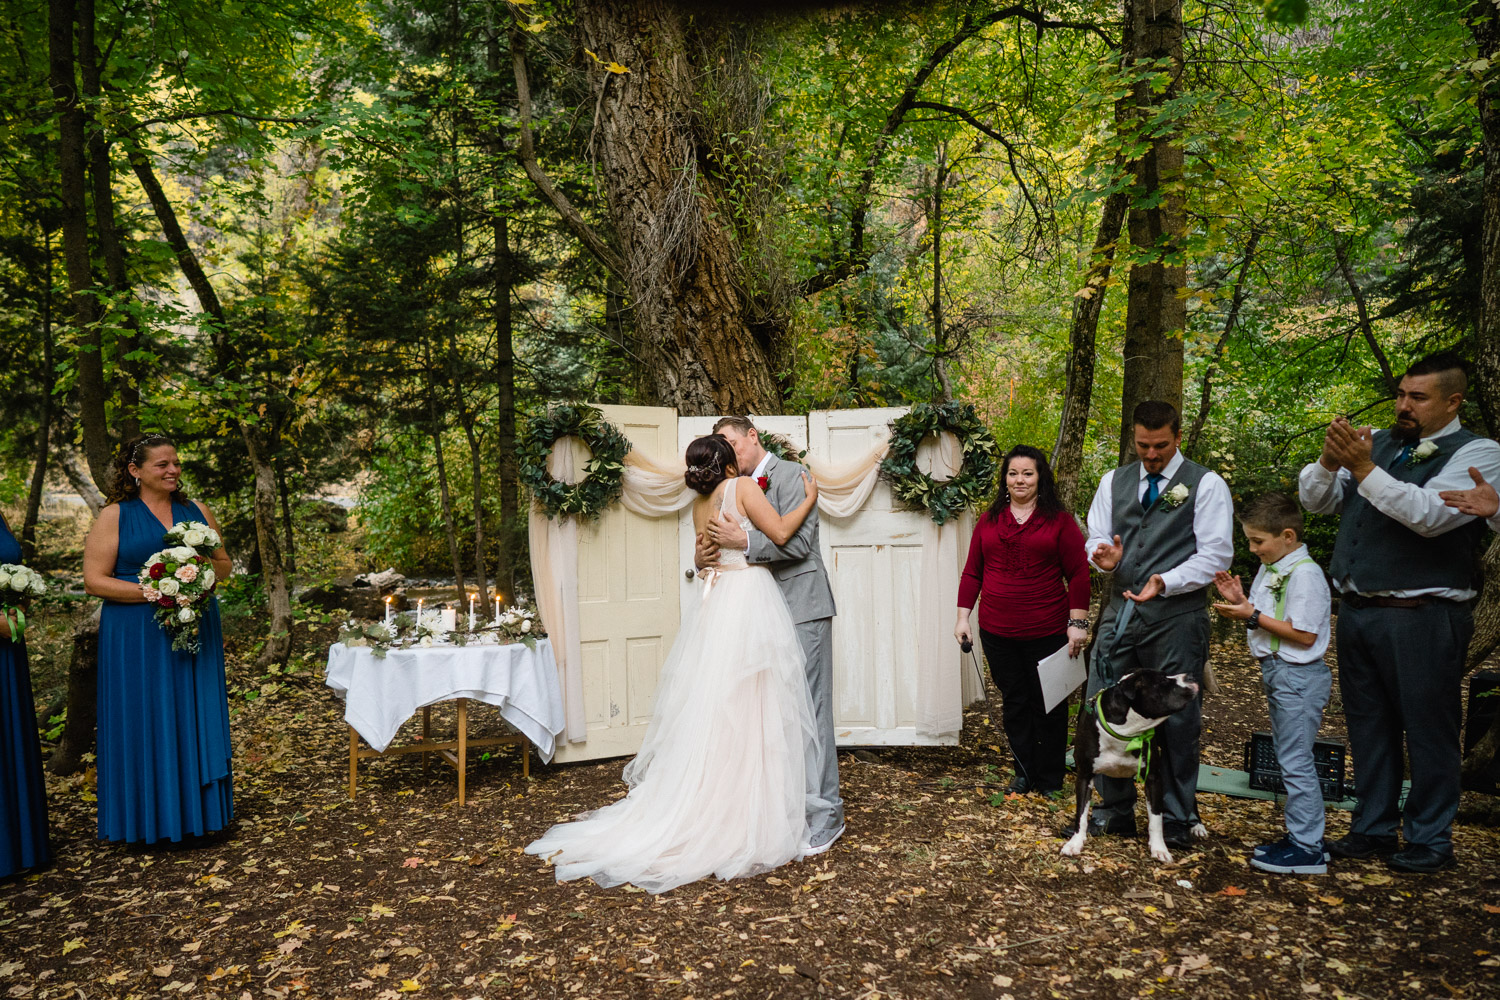 bride and groom kissing at outdoor altar with wedding party millcreek canyon utah